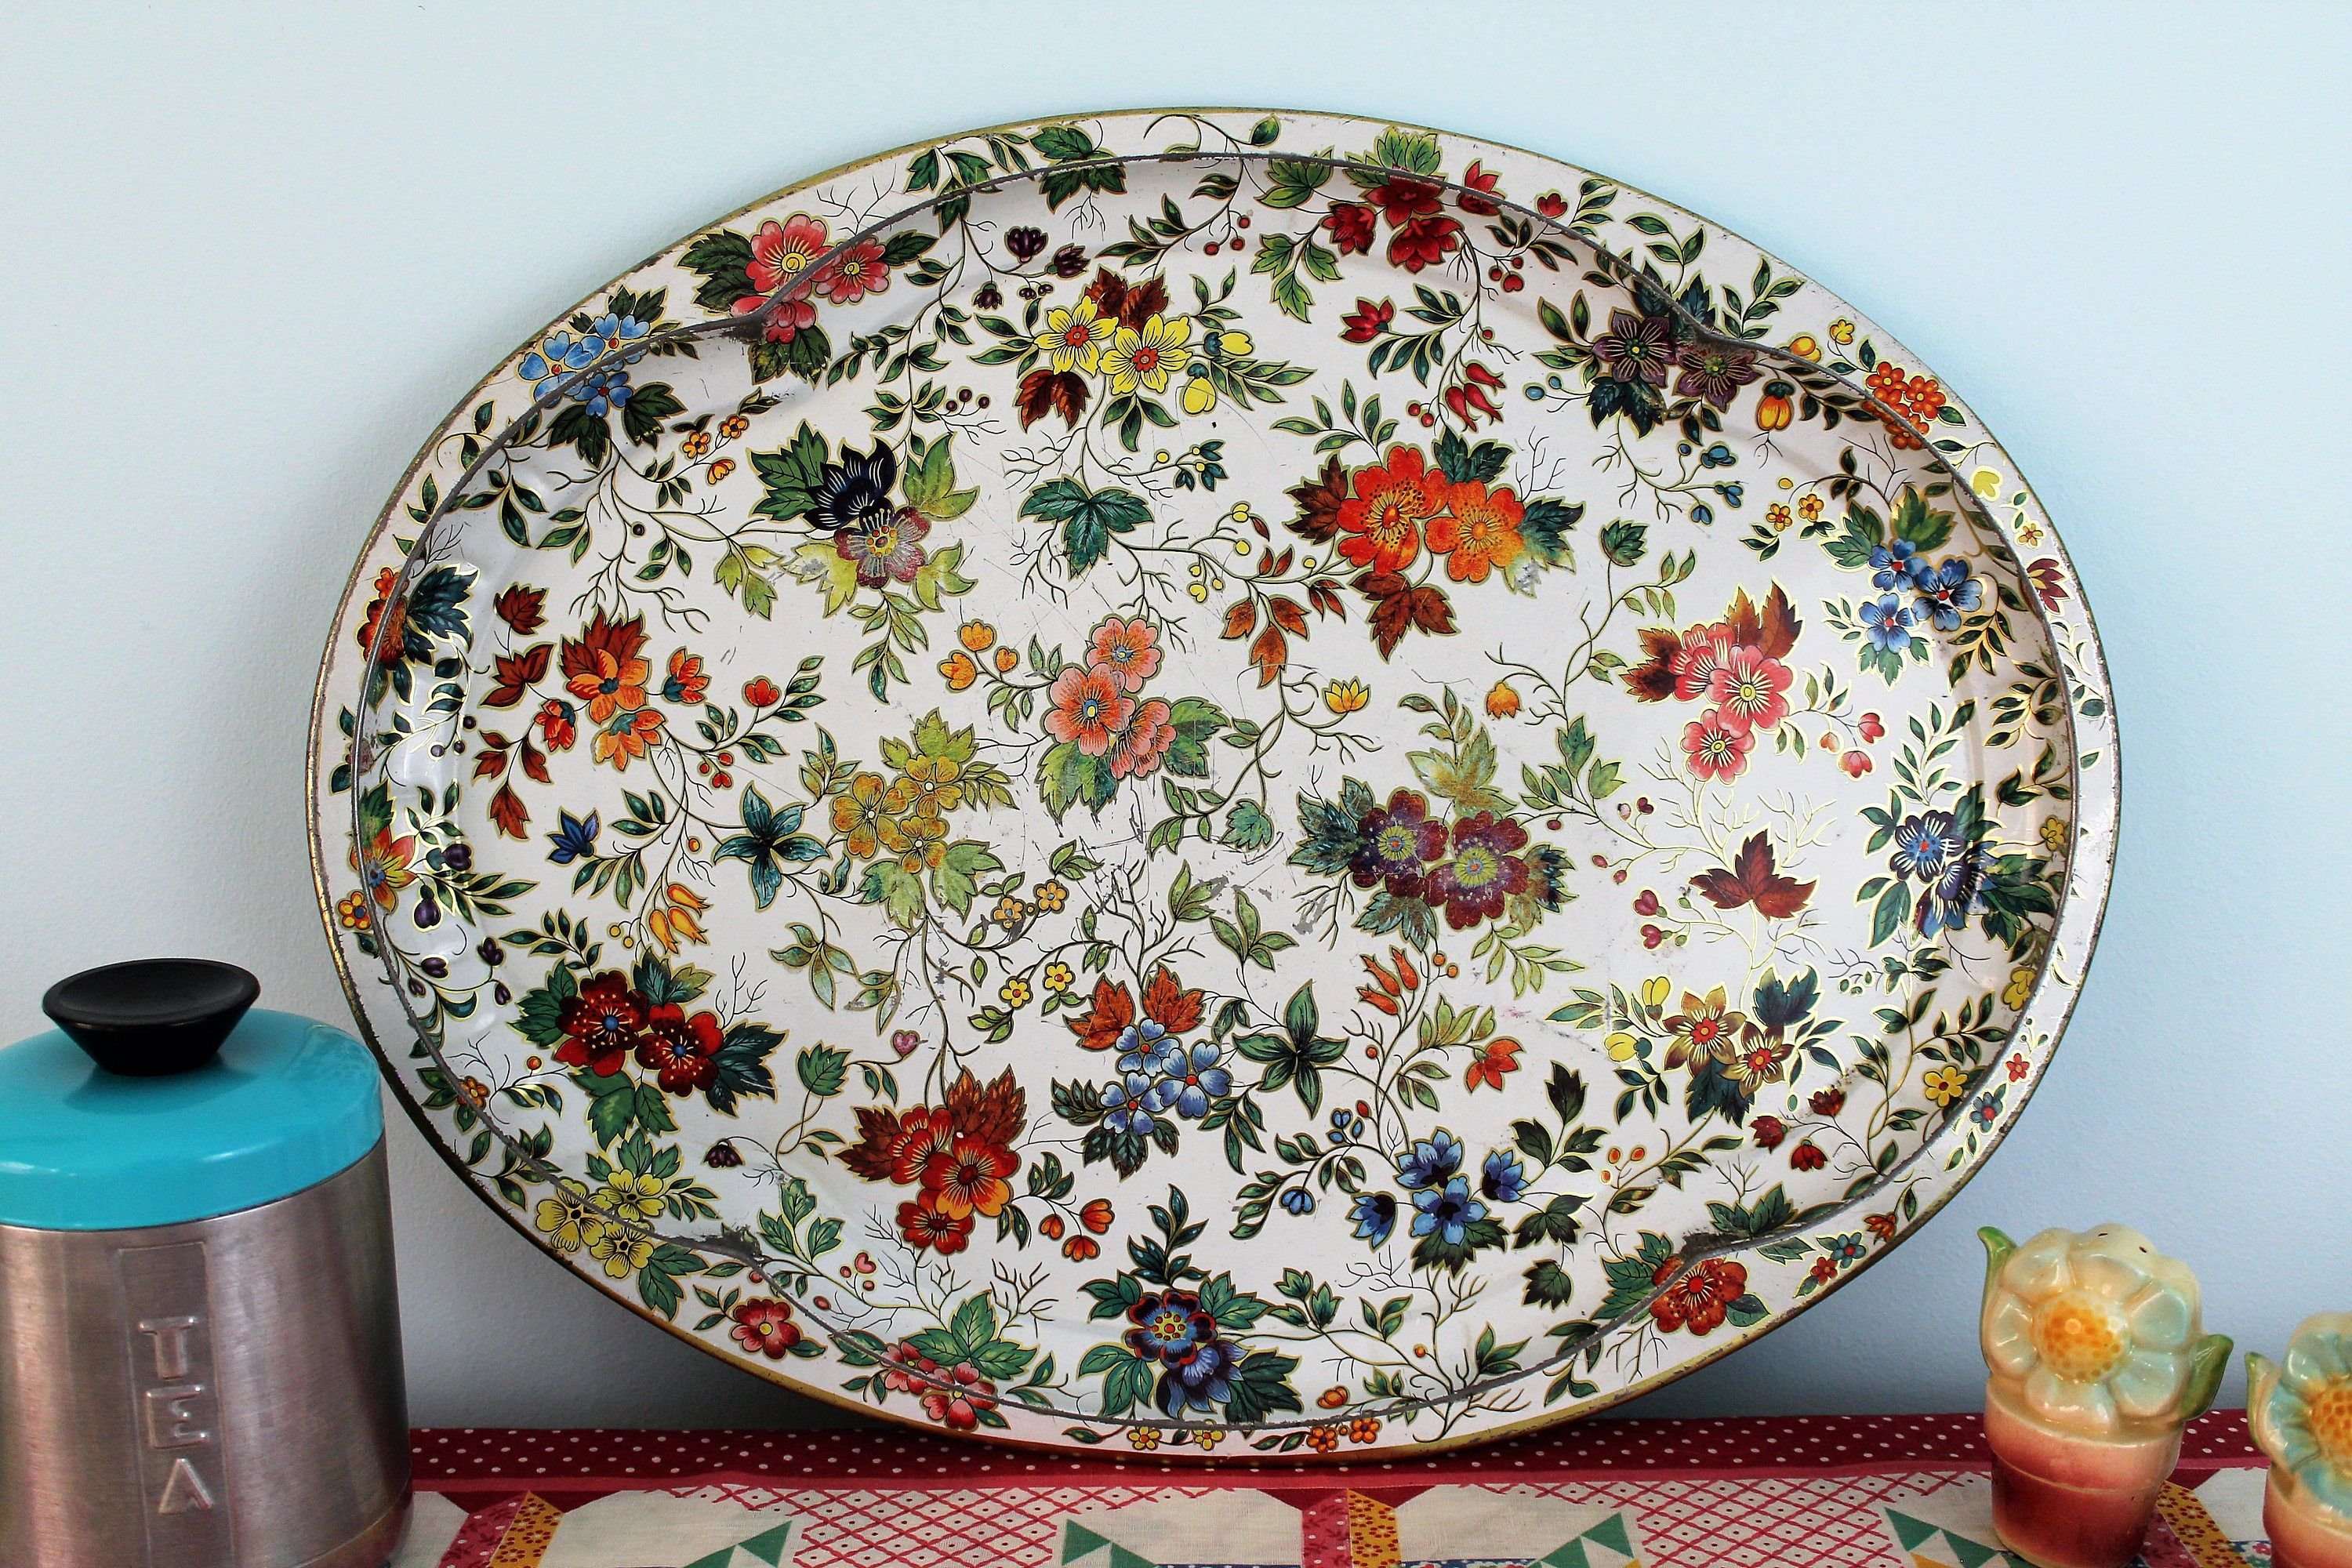 Daher Decorated Ware Tray Made In England Classy Large Vintage Oval Tray With Chintz Floral Patterndaher 2018